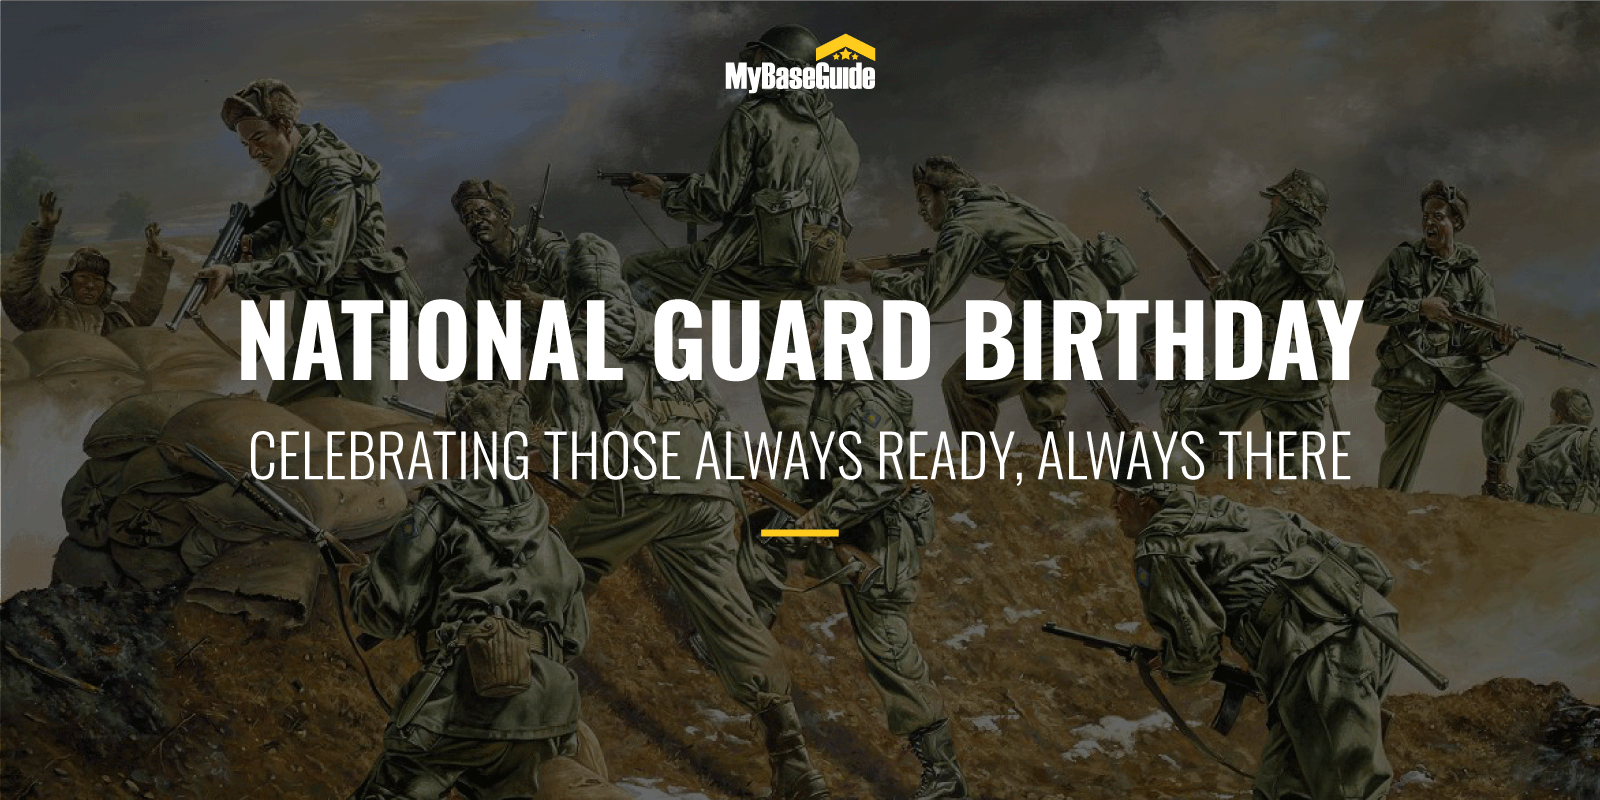 National Guard Birthday: Celebrating Those Always Ready, Always There